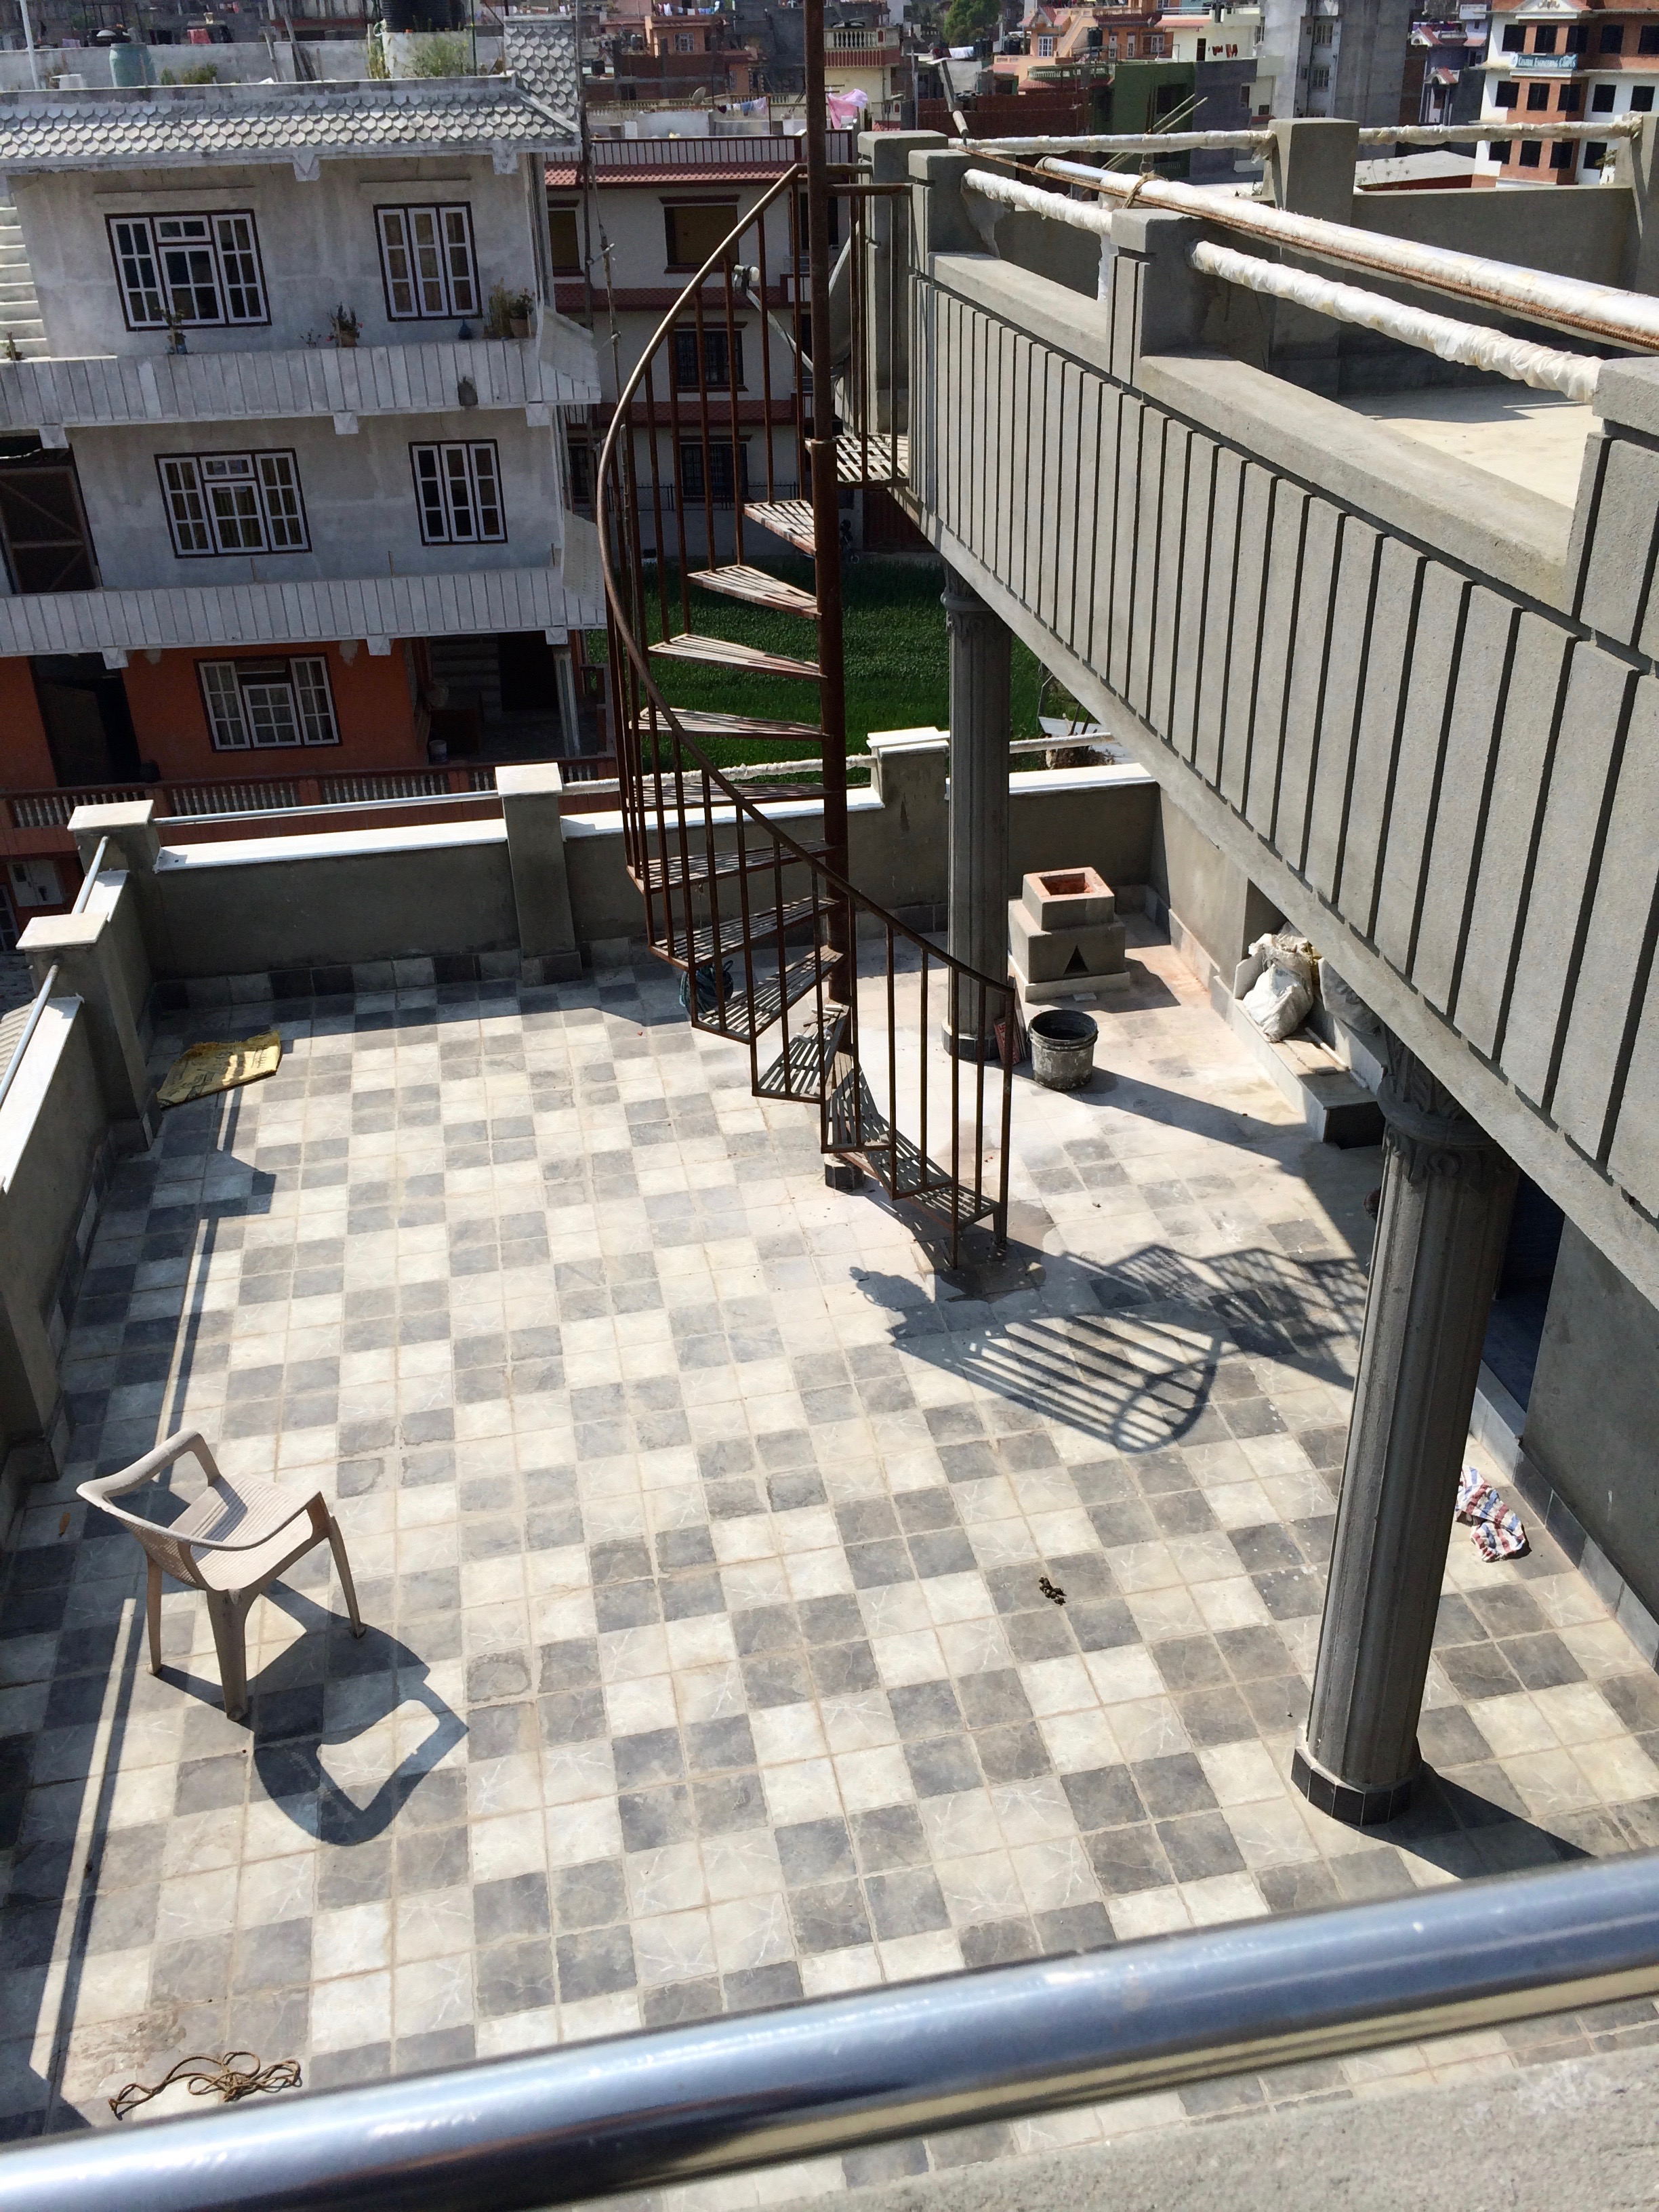 The new rooftop patio before Tika installed her flowers